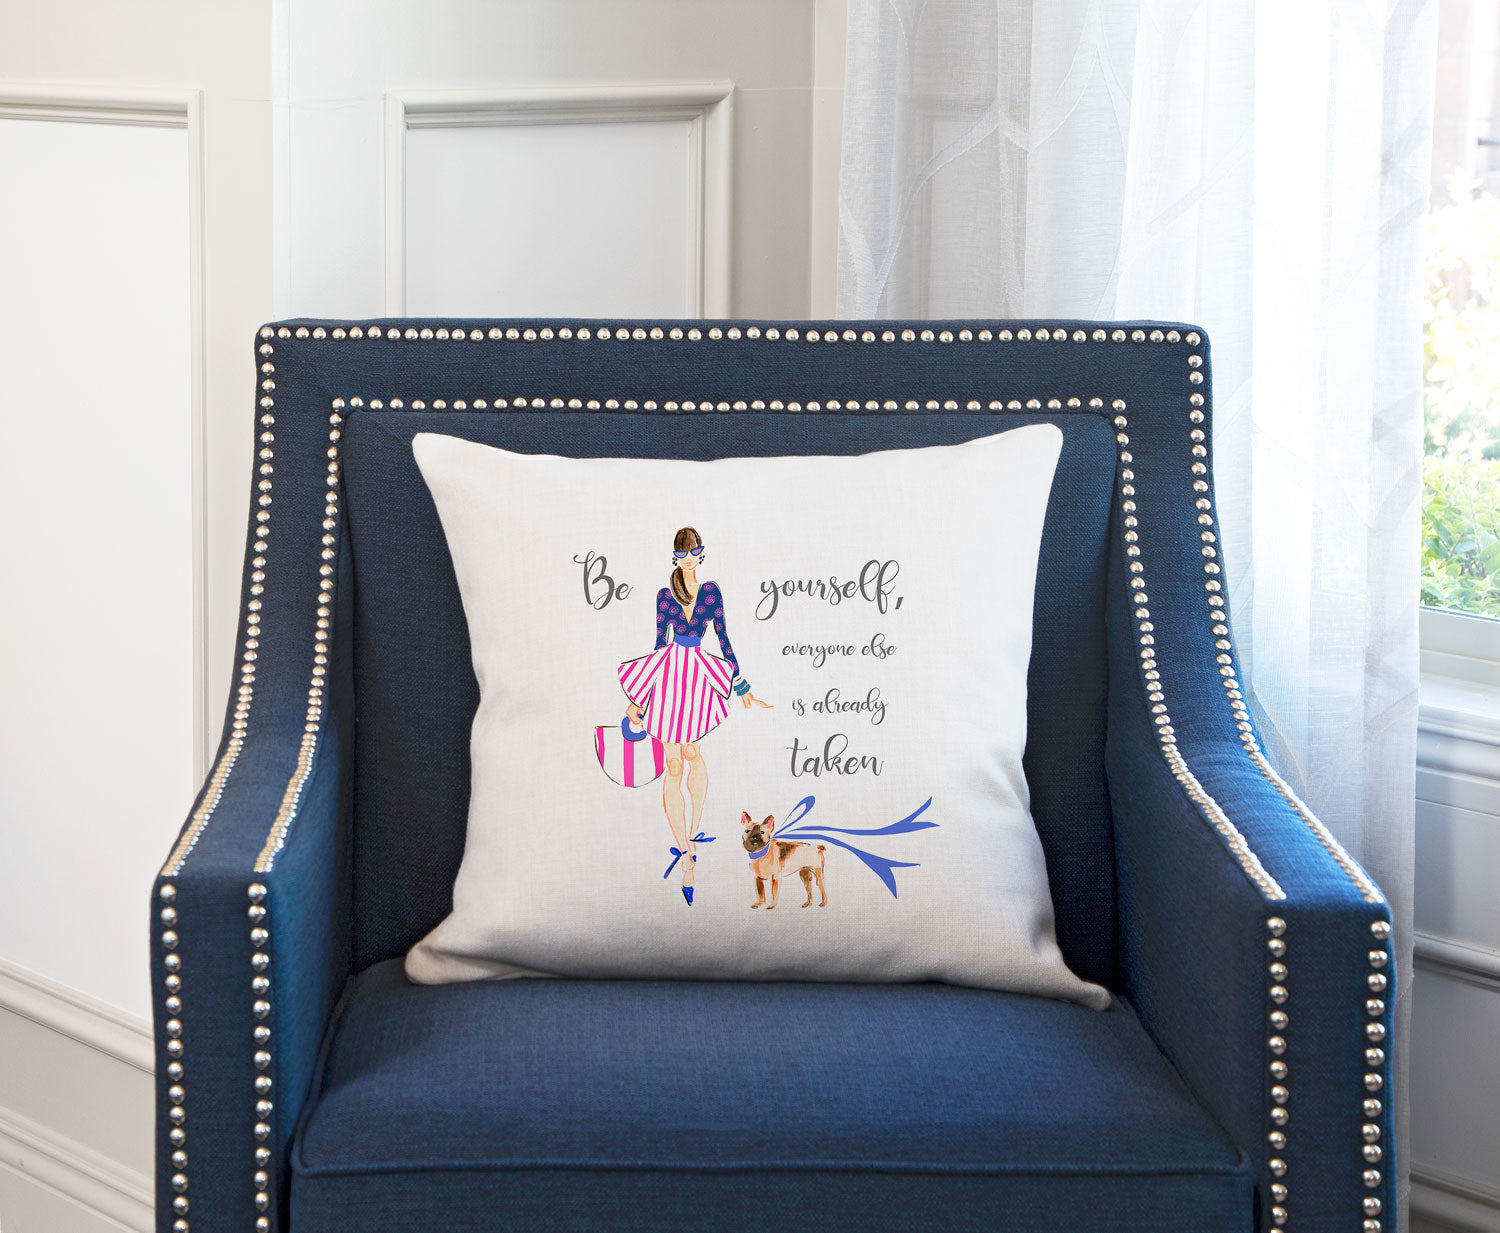 All About Me Throw Pillow Cover